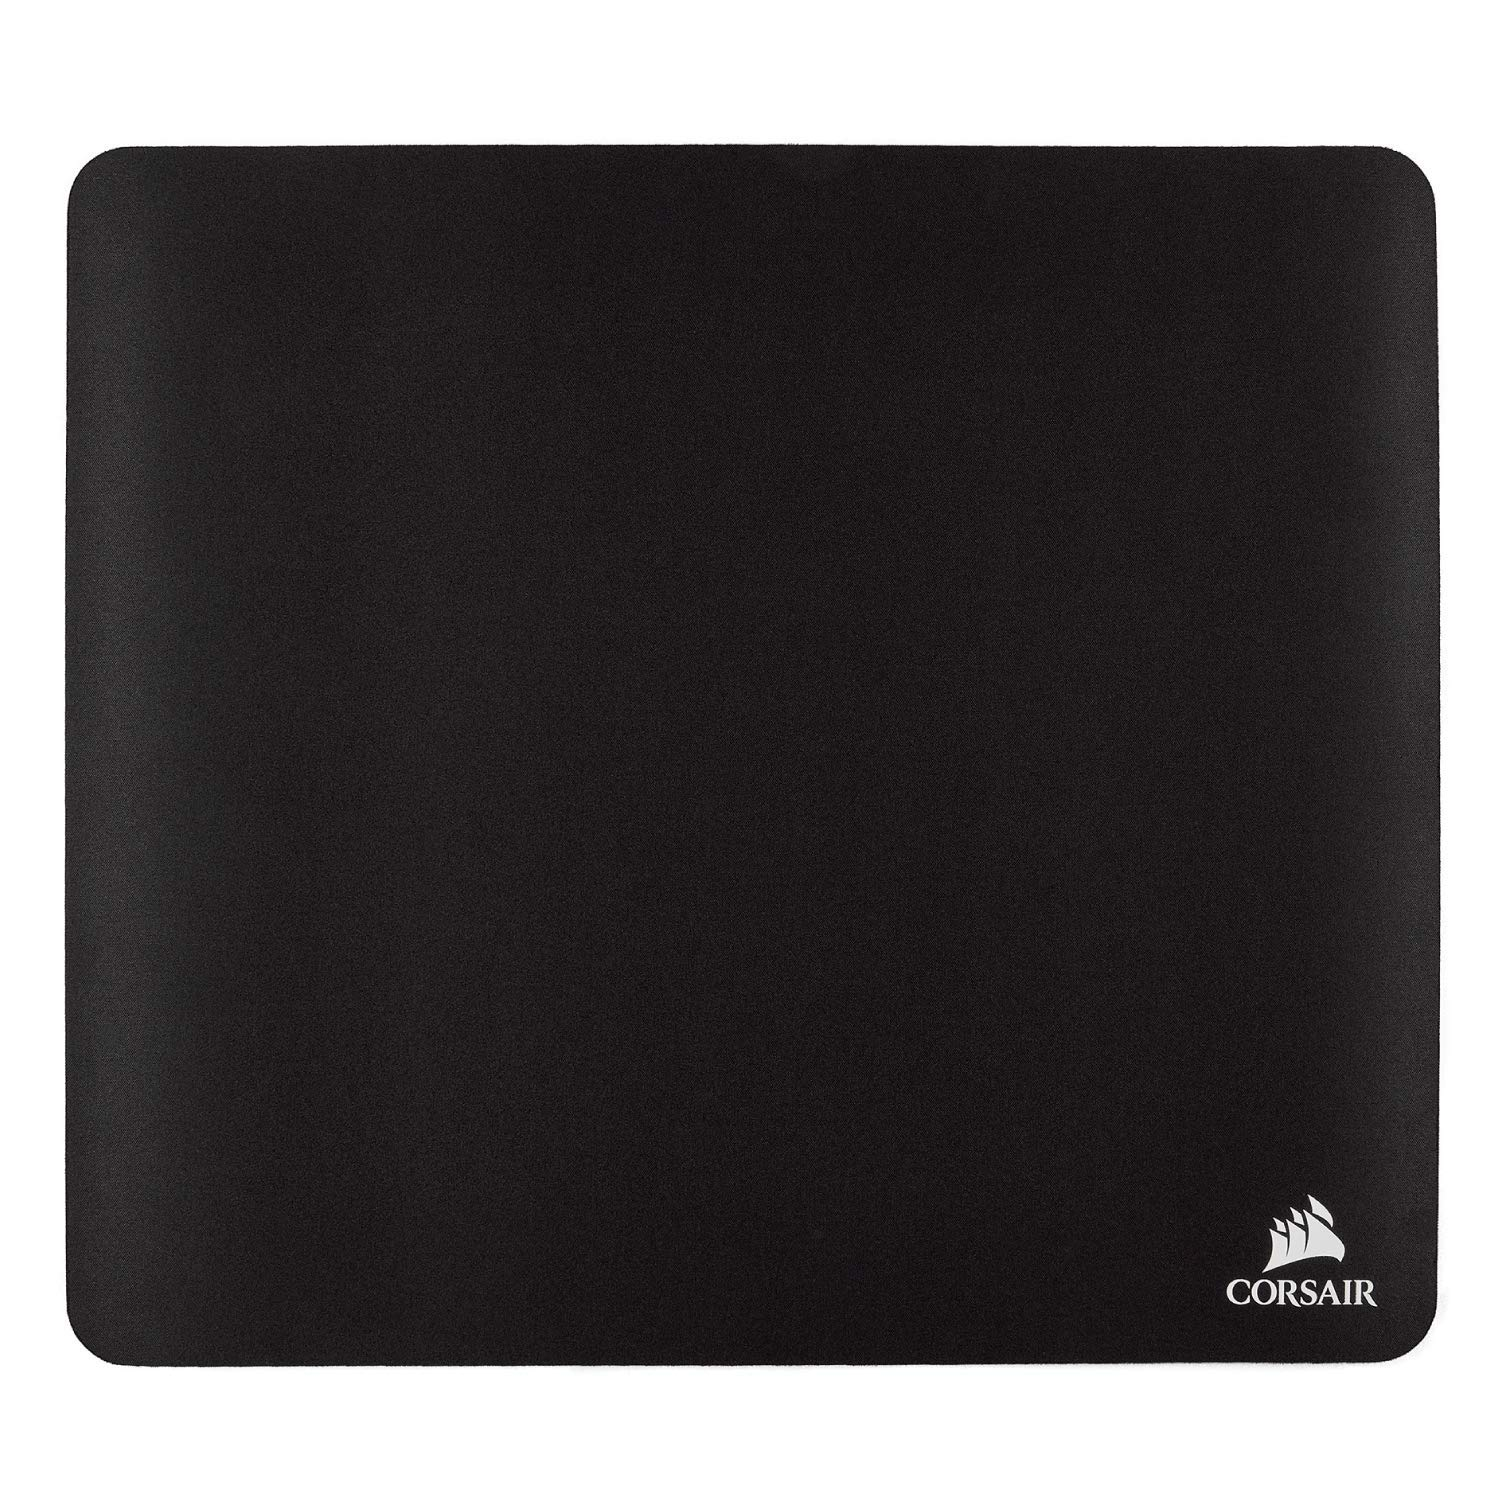 CORSAIR MM250 Champions Series – Premium Extra Thick Cloth Gaming Mouse Pad – Designed for Maximum Control X-Large